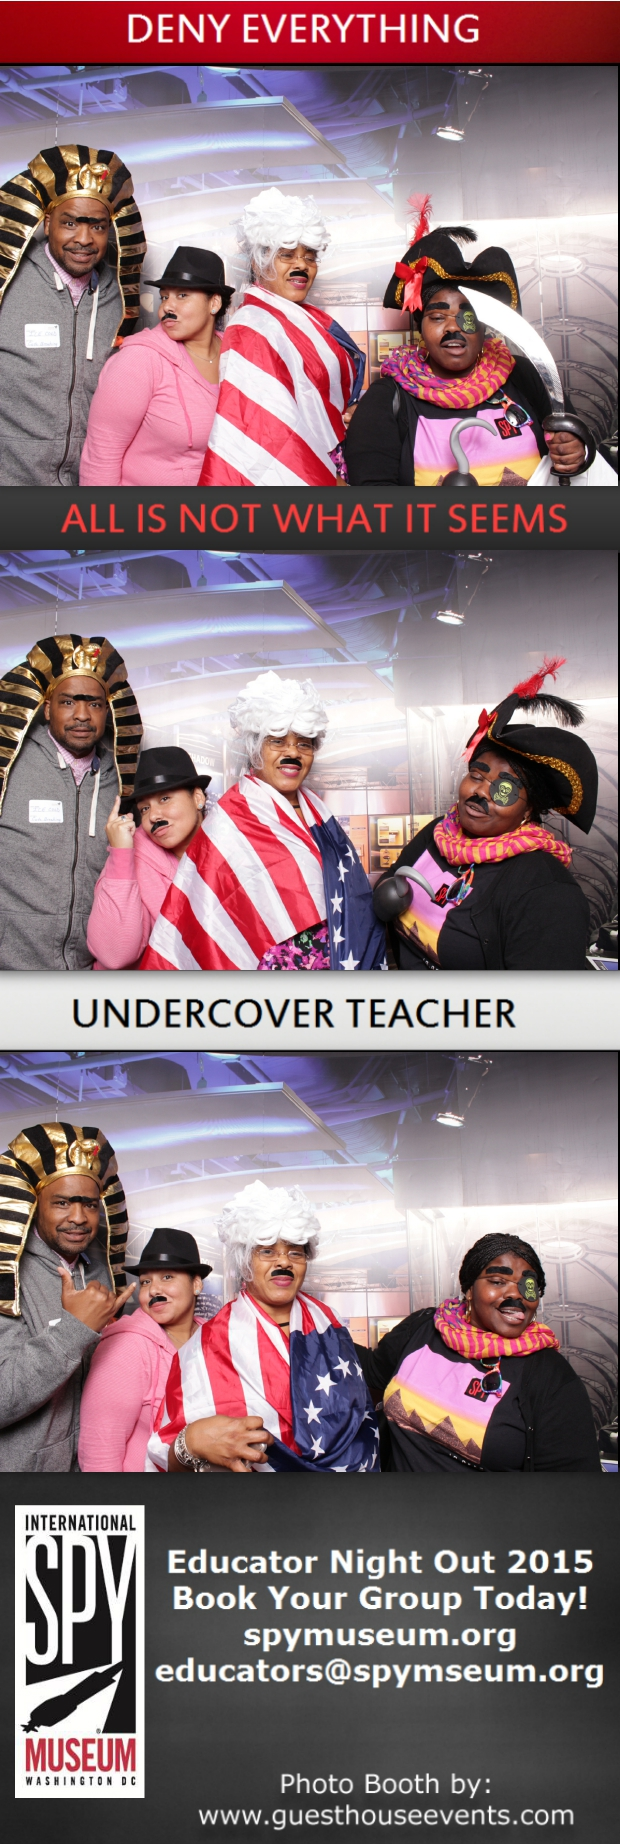 Guest House Events Photo Booth Spy Museum Educator Night Out (70).jpg